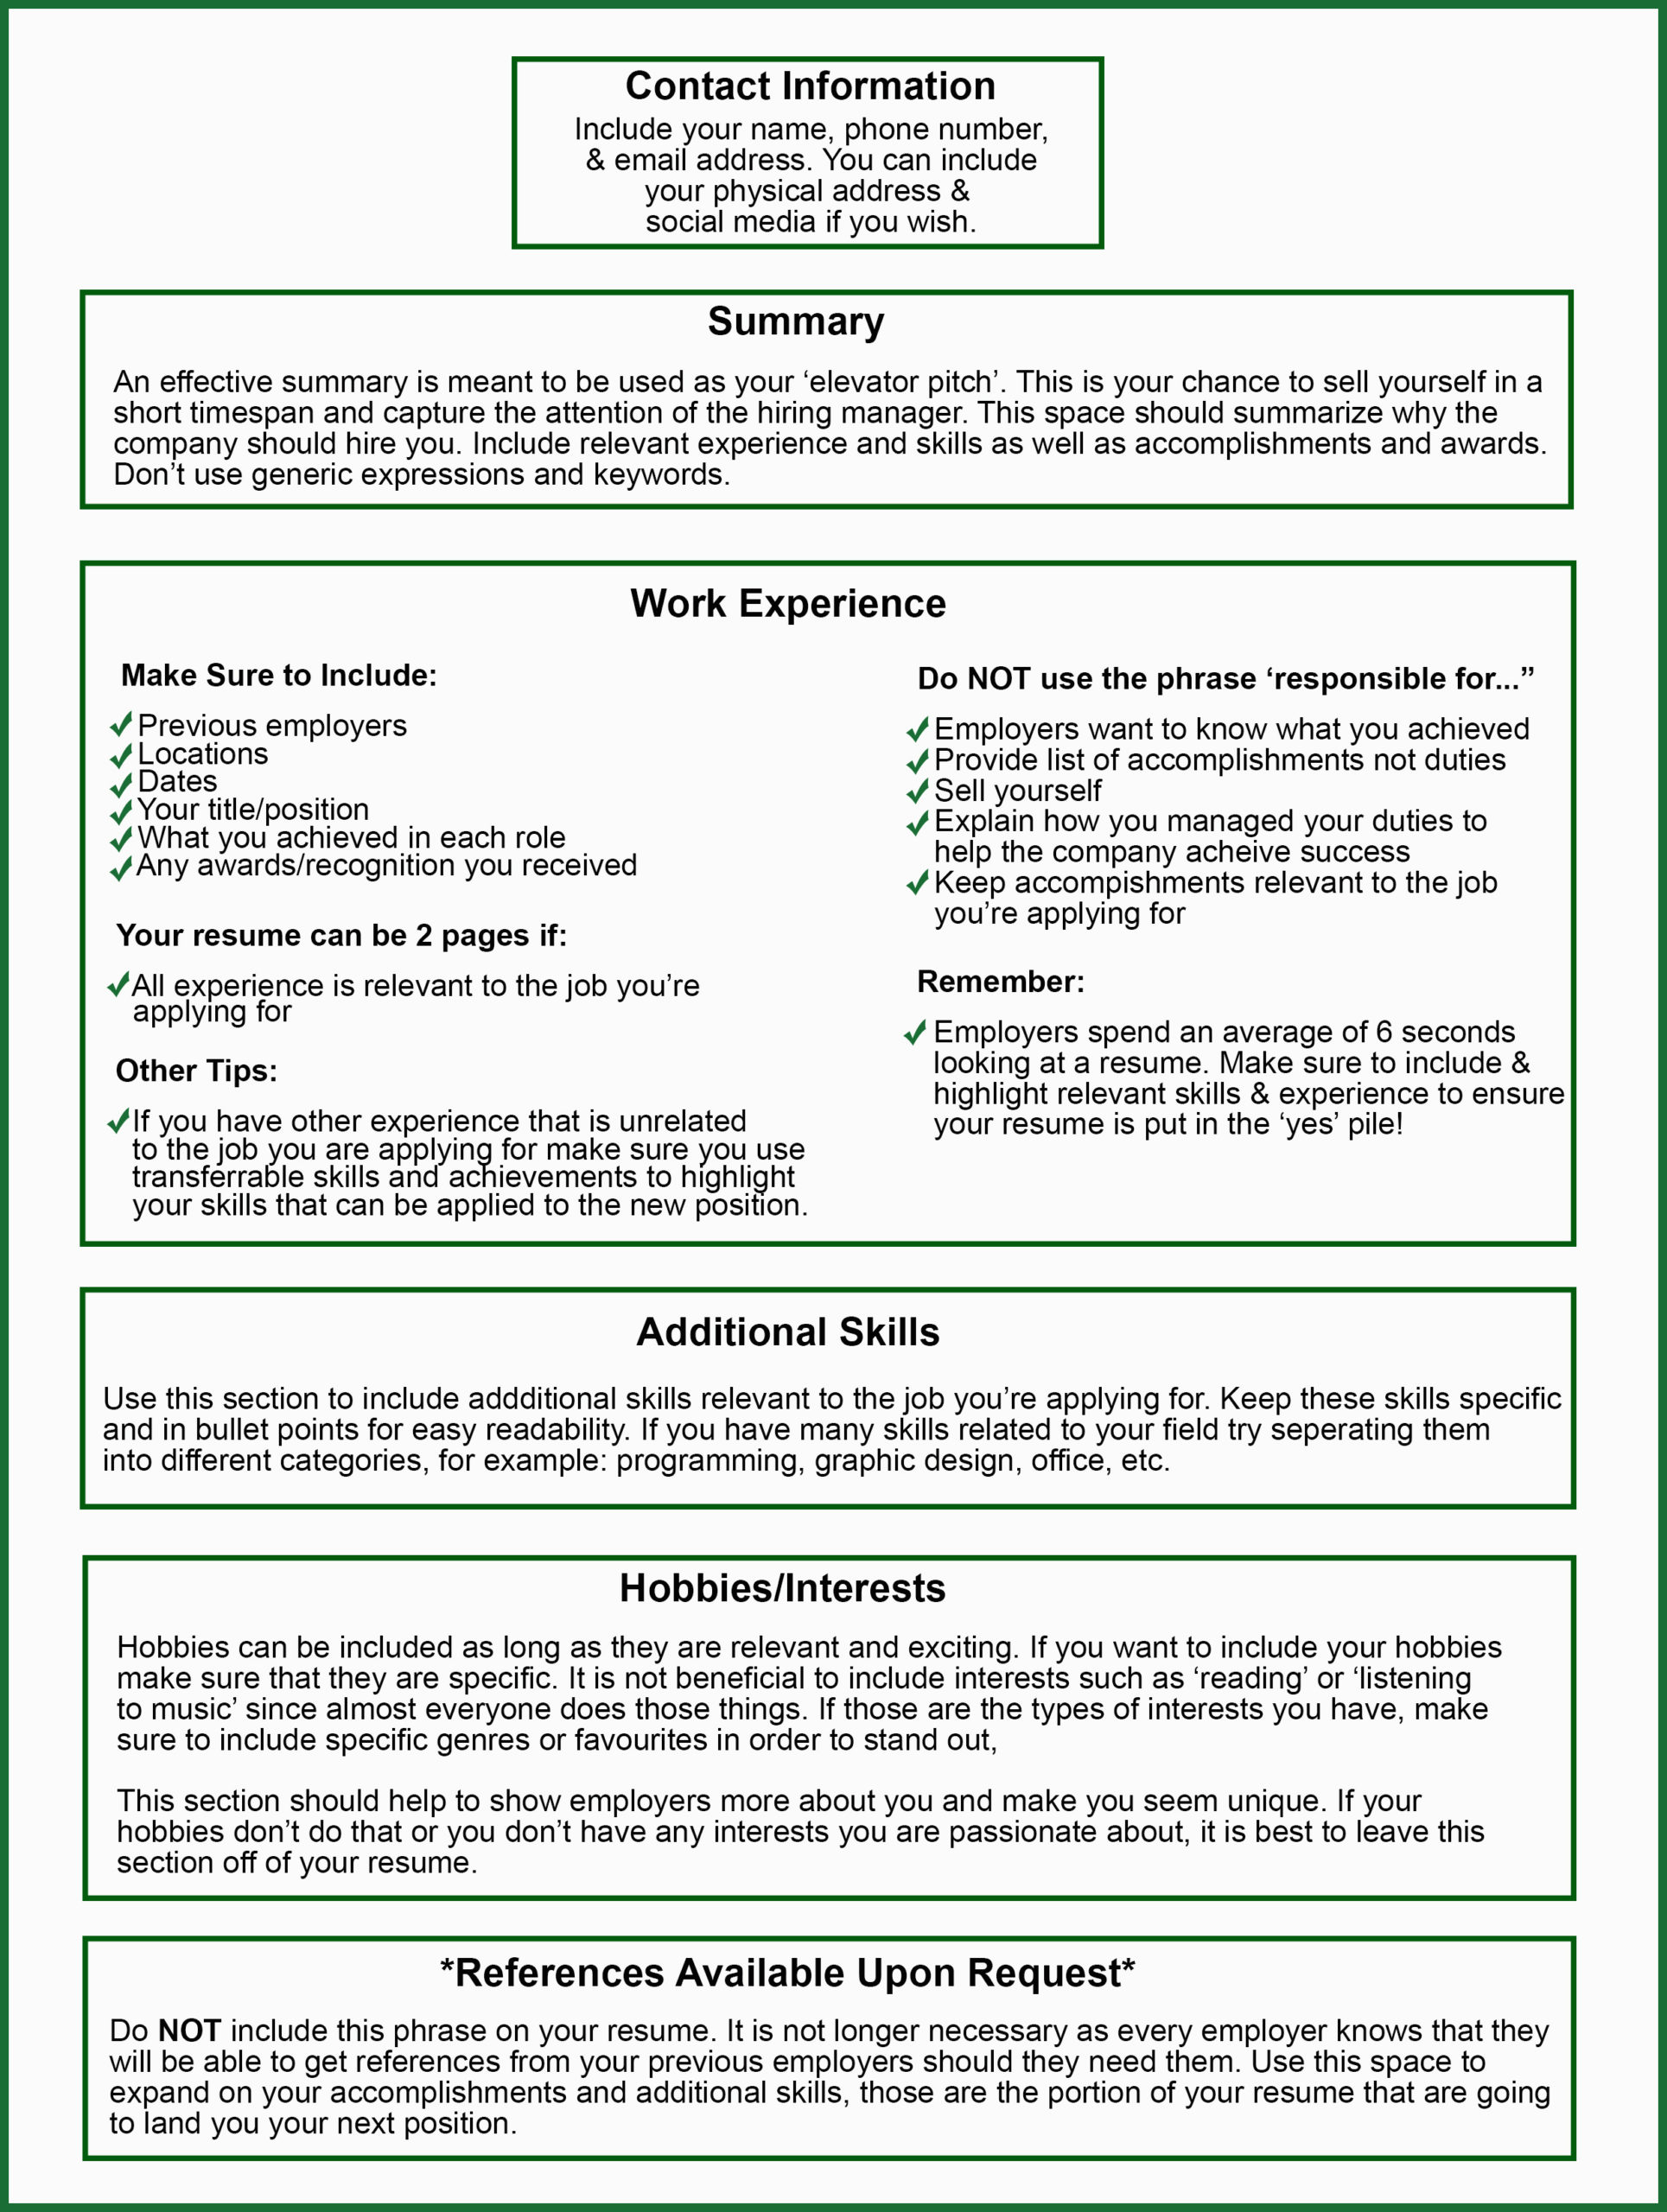 resume writing your breakaway staffing outstanding do best website to examples pay Resume Should You Include A Picture On Your Resume